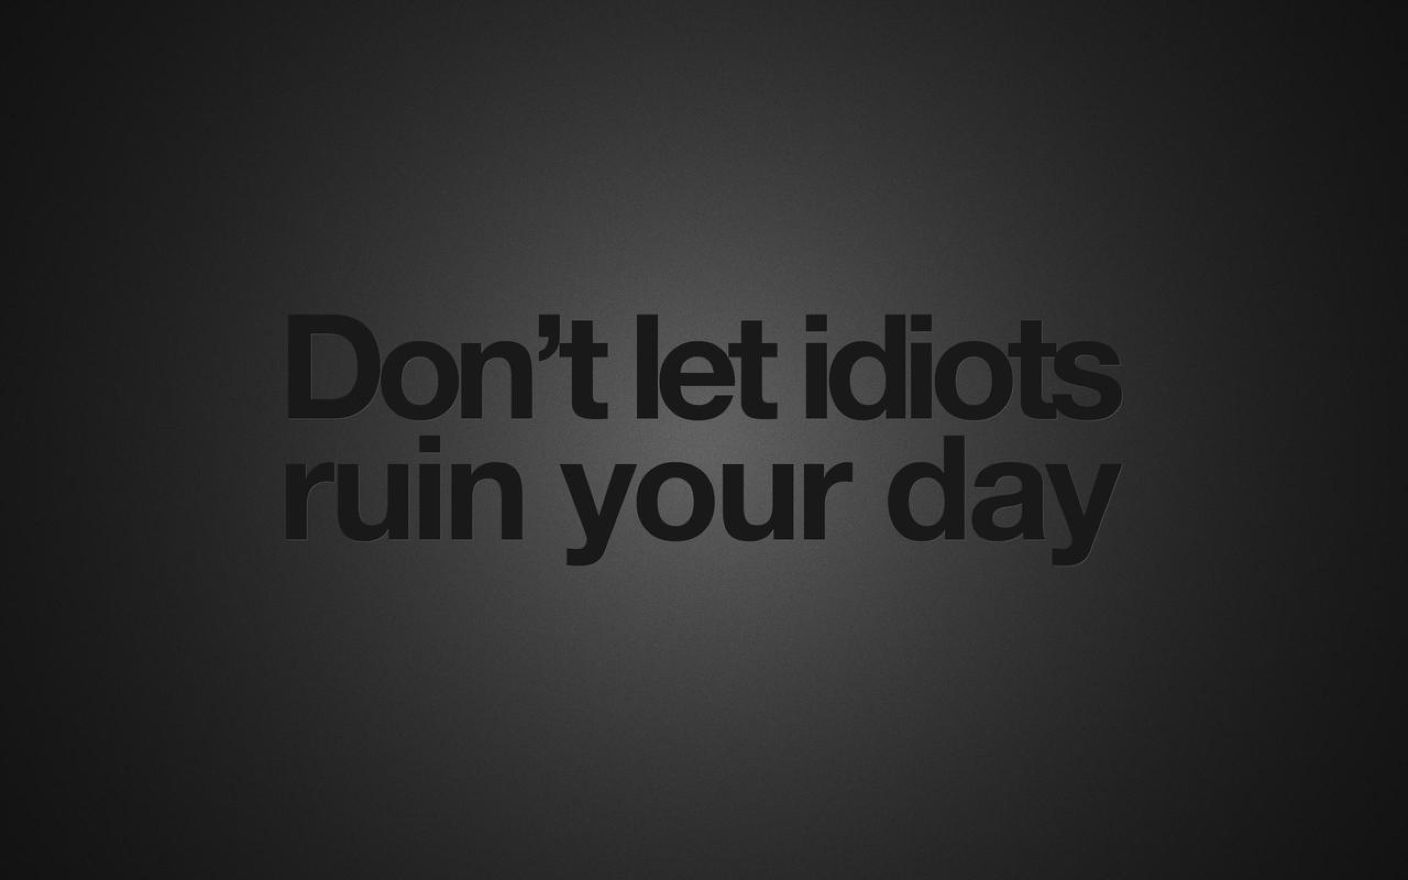 Download free HD Black Background Quotes Idiots Wallpaper, image